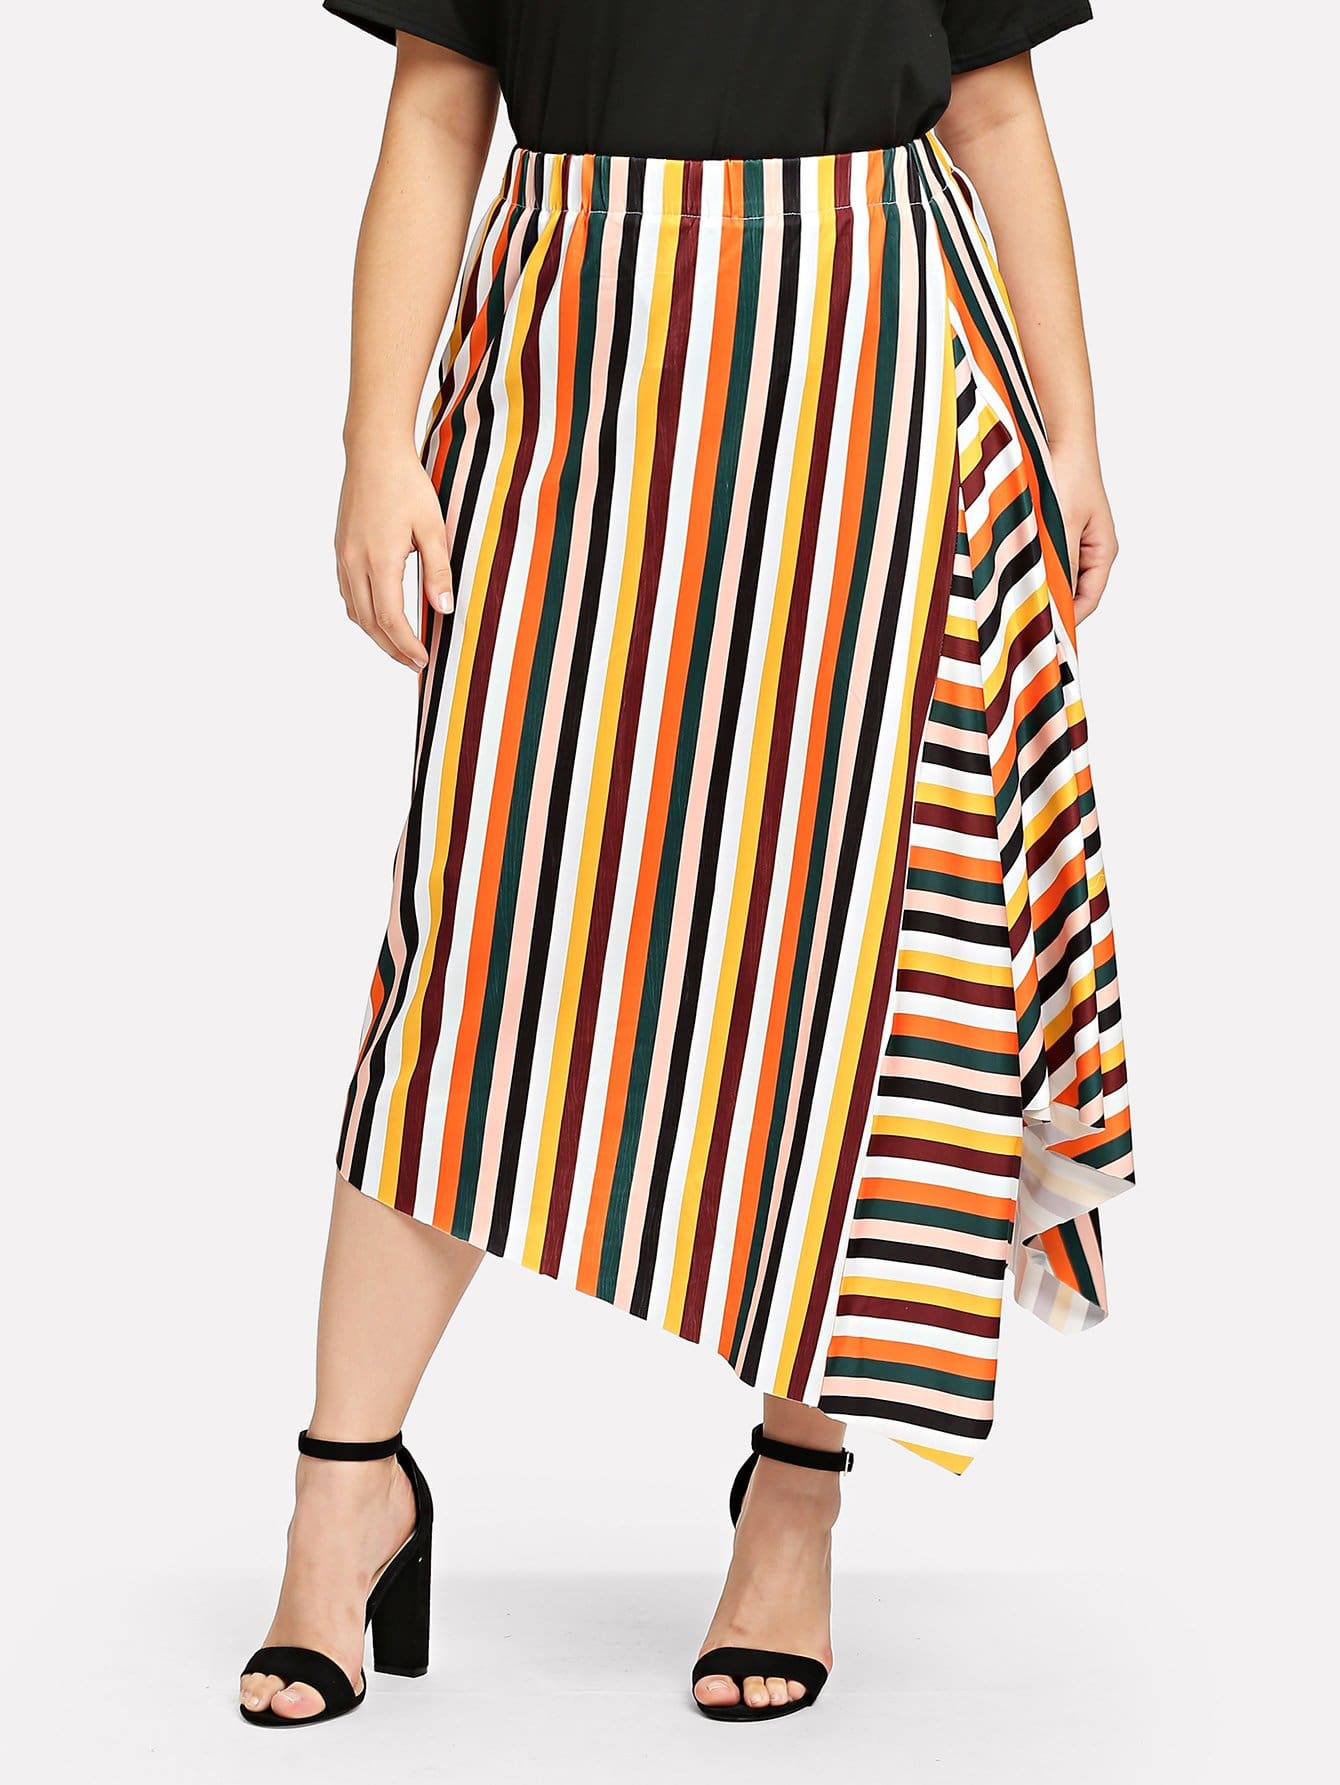 Striped Asymmetrical Skirt шланг walcom 60211